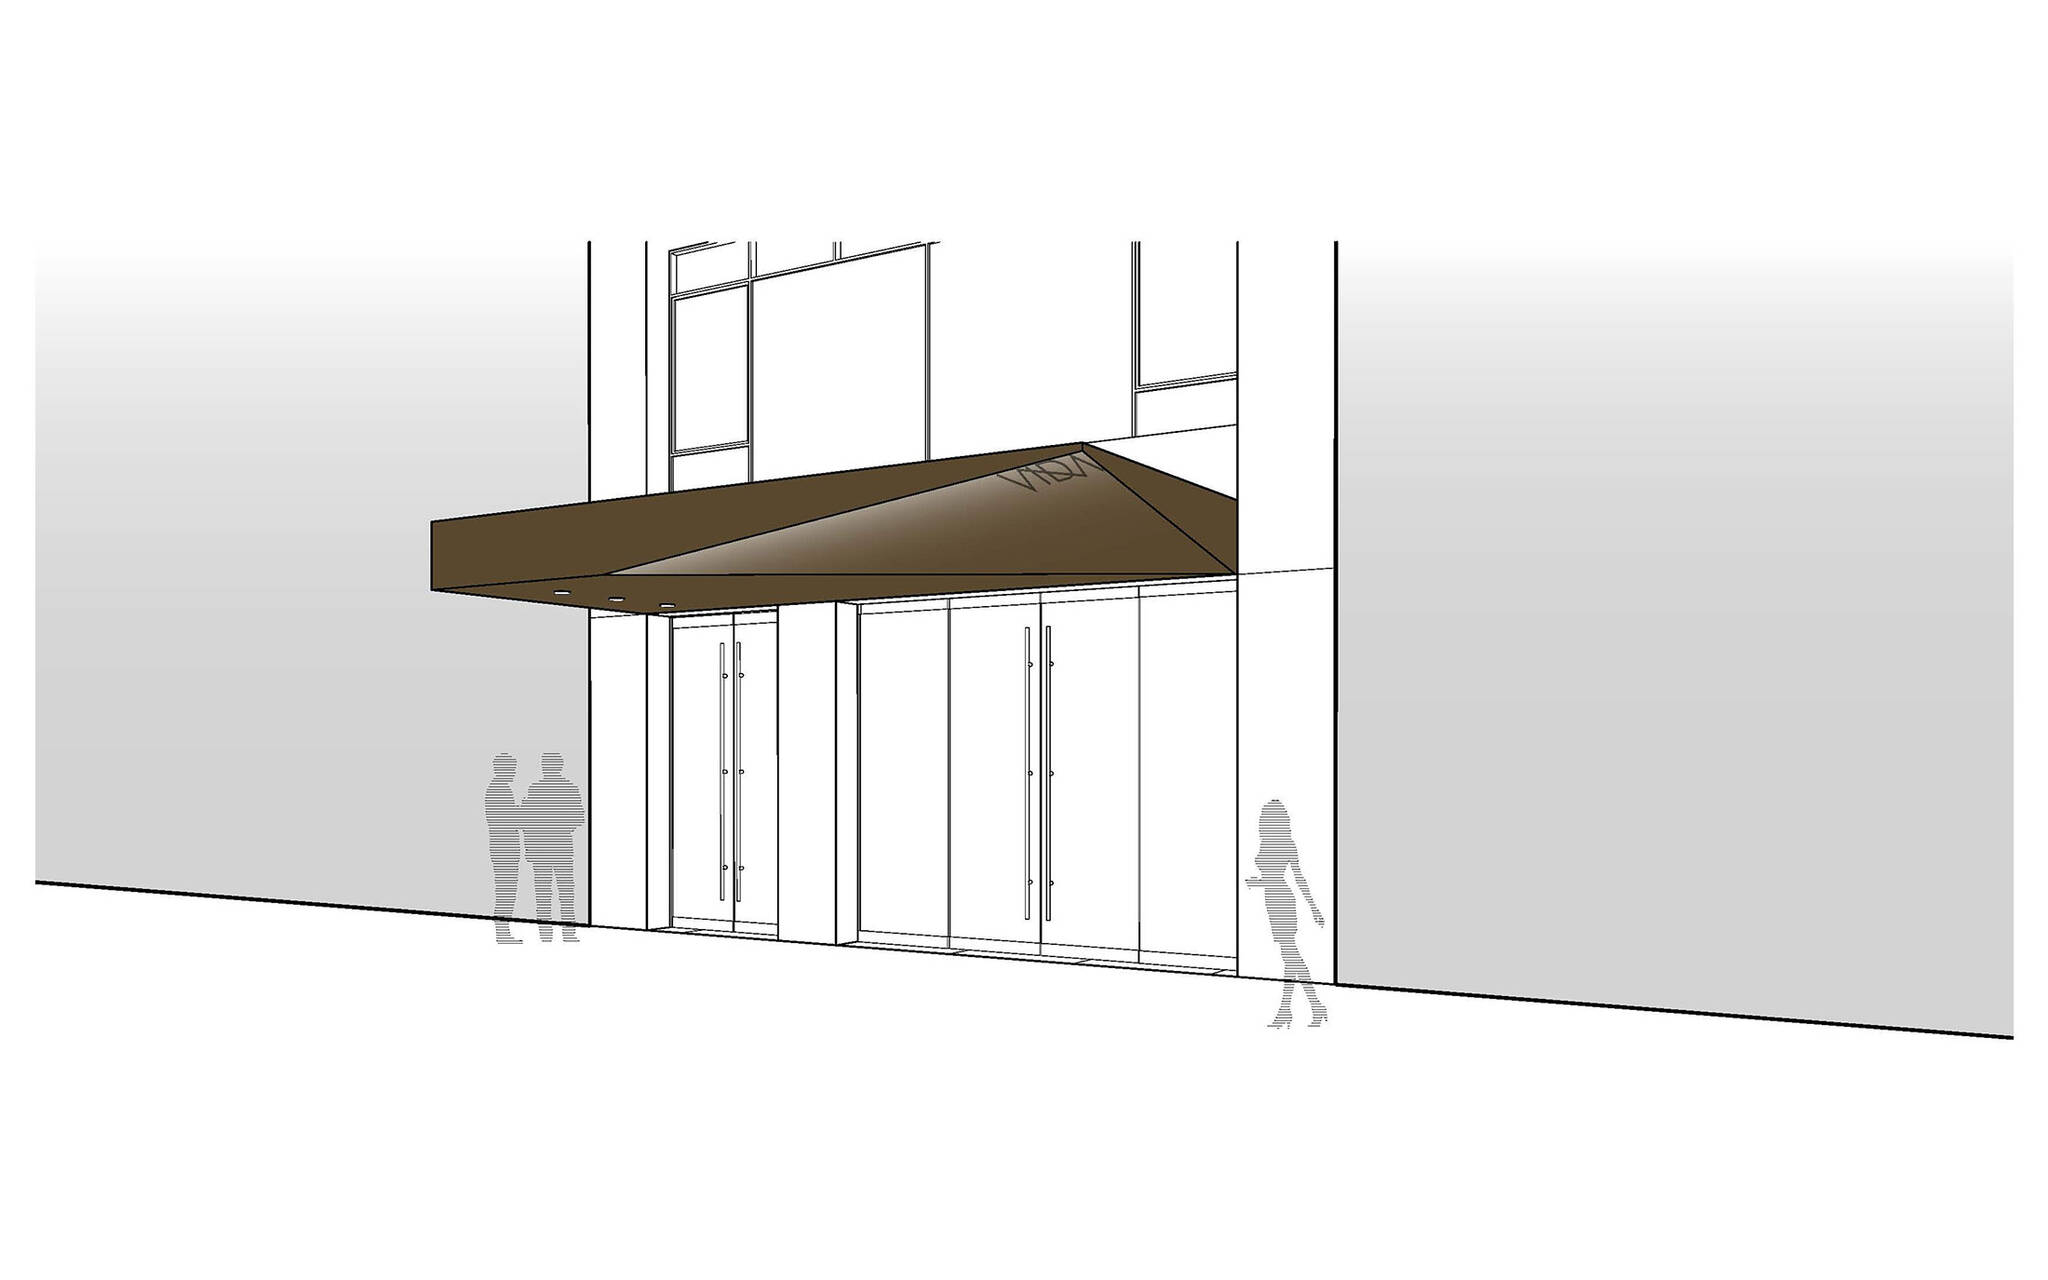 Sidewalk diagram of the Vida Shoes International canopy project for the shop located at 29 West 56th Street in Midtown, New York City designed by the architecture studio Danny Forster & Architecture